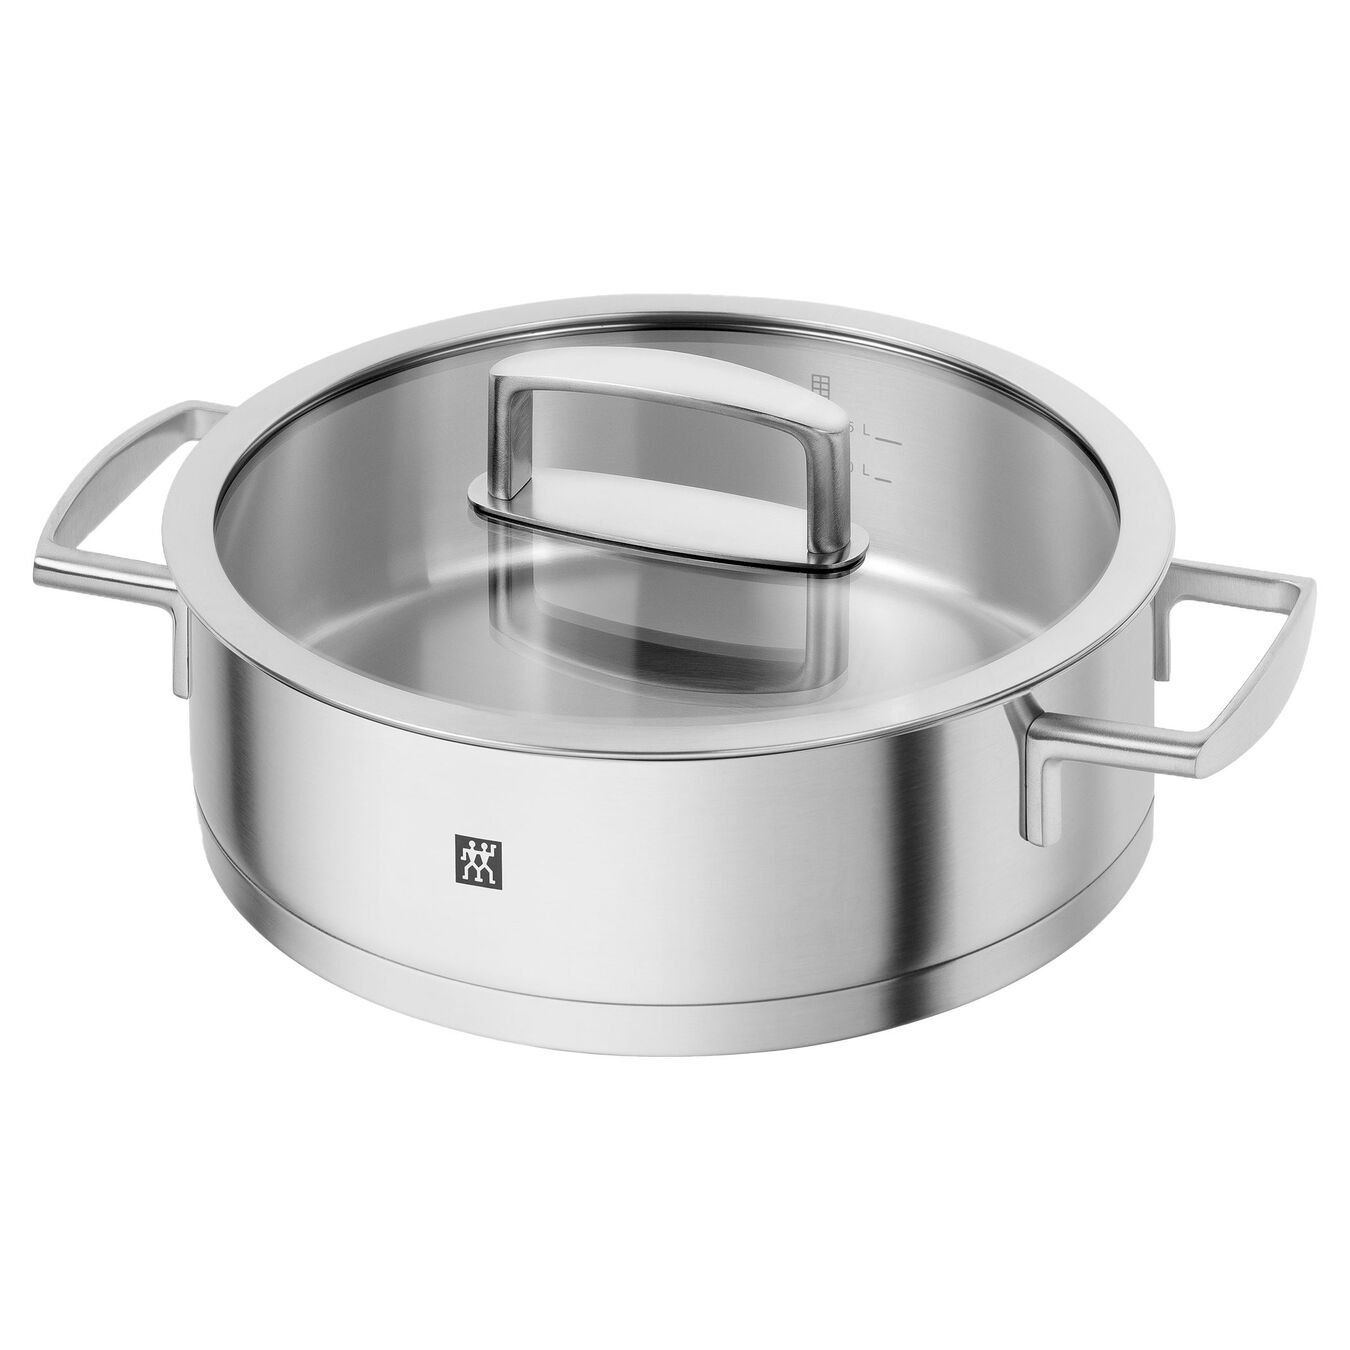 Pot set, 10 Piece   round   18/10 Stainless Steel,,large 4